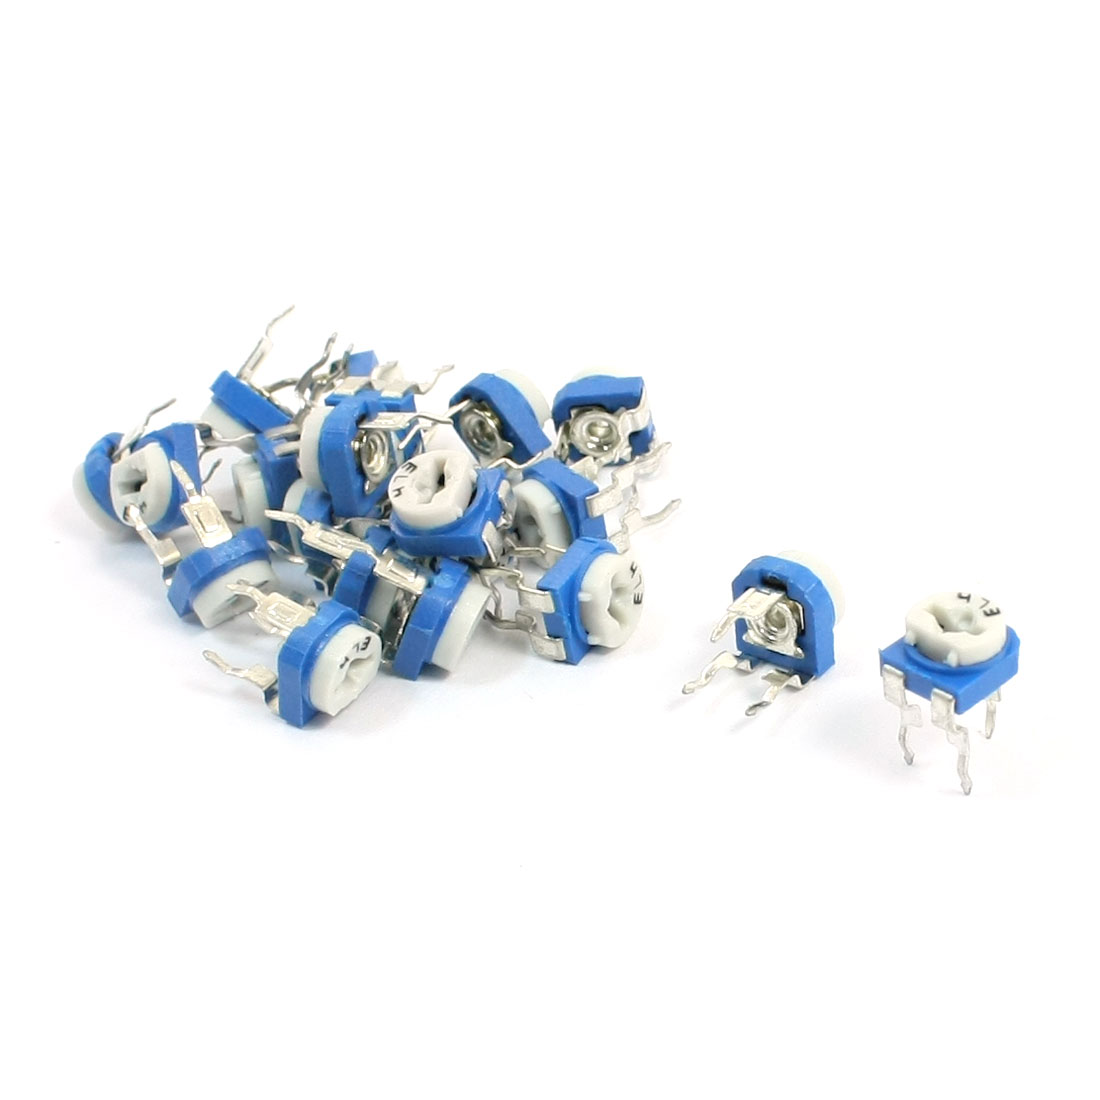 20pcs PCB Mount 47K Ohm Horizontal Pot Variable Potentiometer Trimmer Resistors